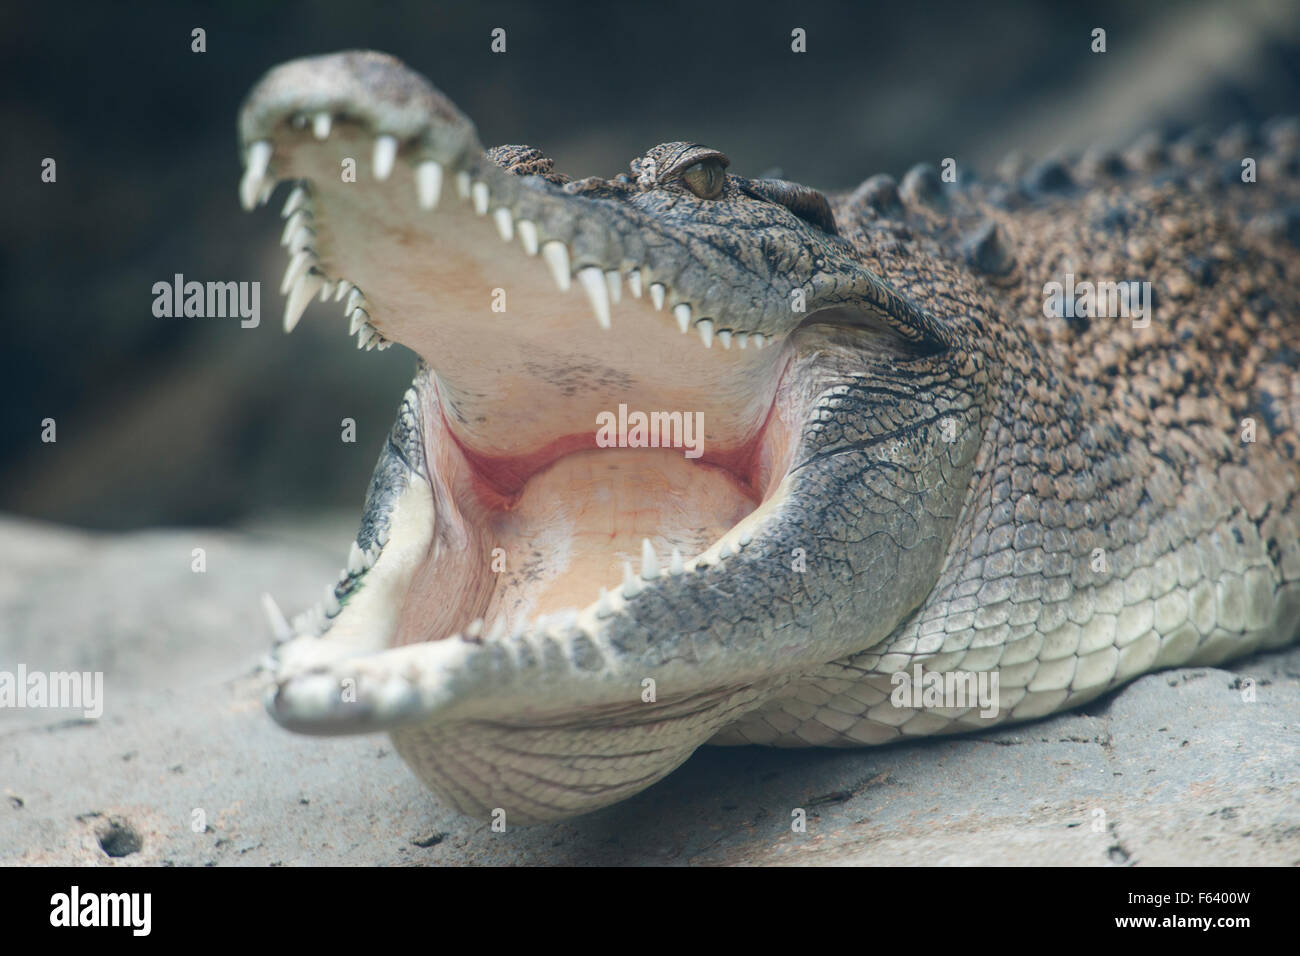 Saltwater crocodile, Crocodylus porosus, (C), basking, yawning, showing eye, mouth and teeth, Asia. - Stock Image